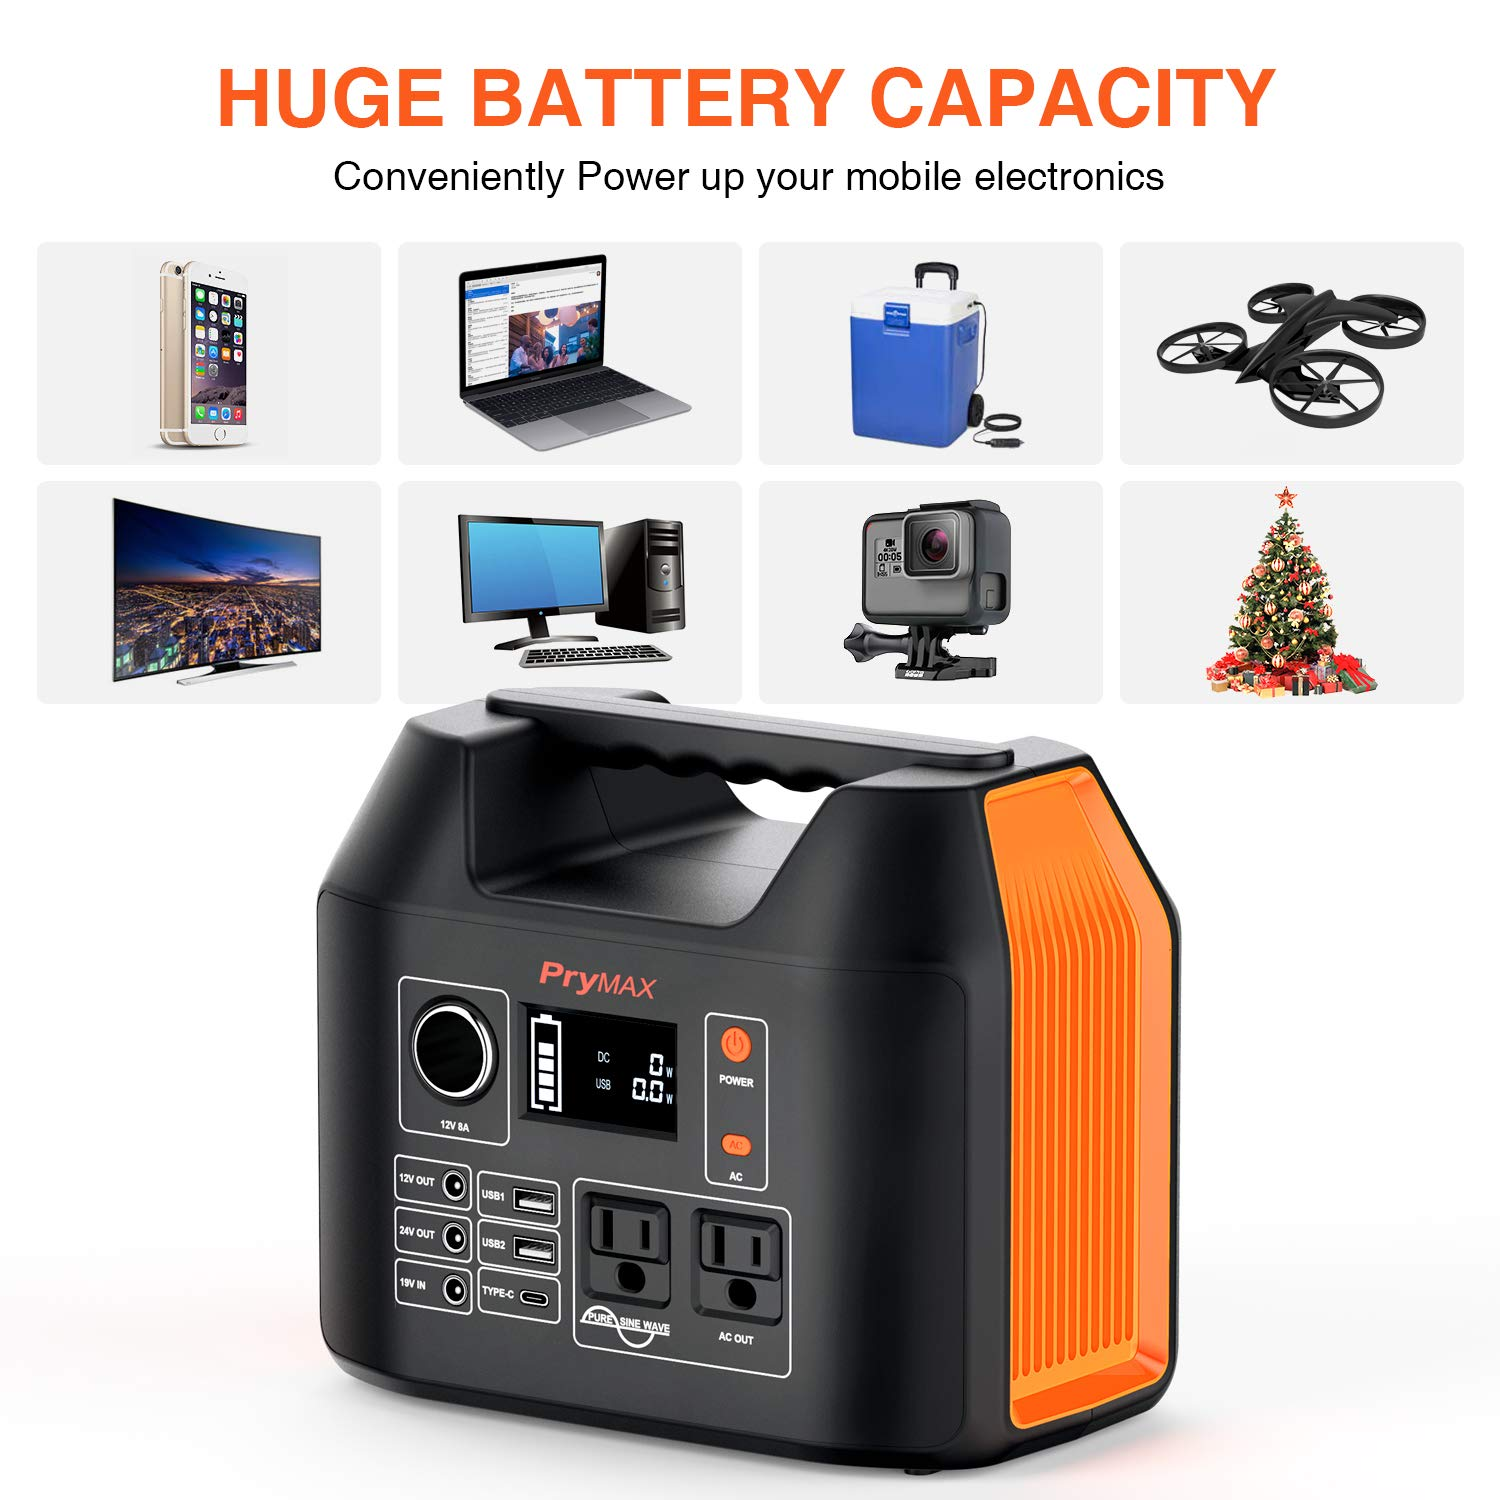 PRYMAX Portable Power Station, 300W Solar Generator 2019 Updated 298Wh CPAP Backup Battery Pack with LED Flashlight,110V 300W Pure Sine Wave,AC Outlet, QC3.0 USB,for Outdoors Camping Travel Emergency